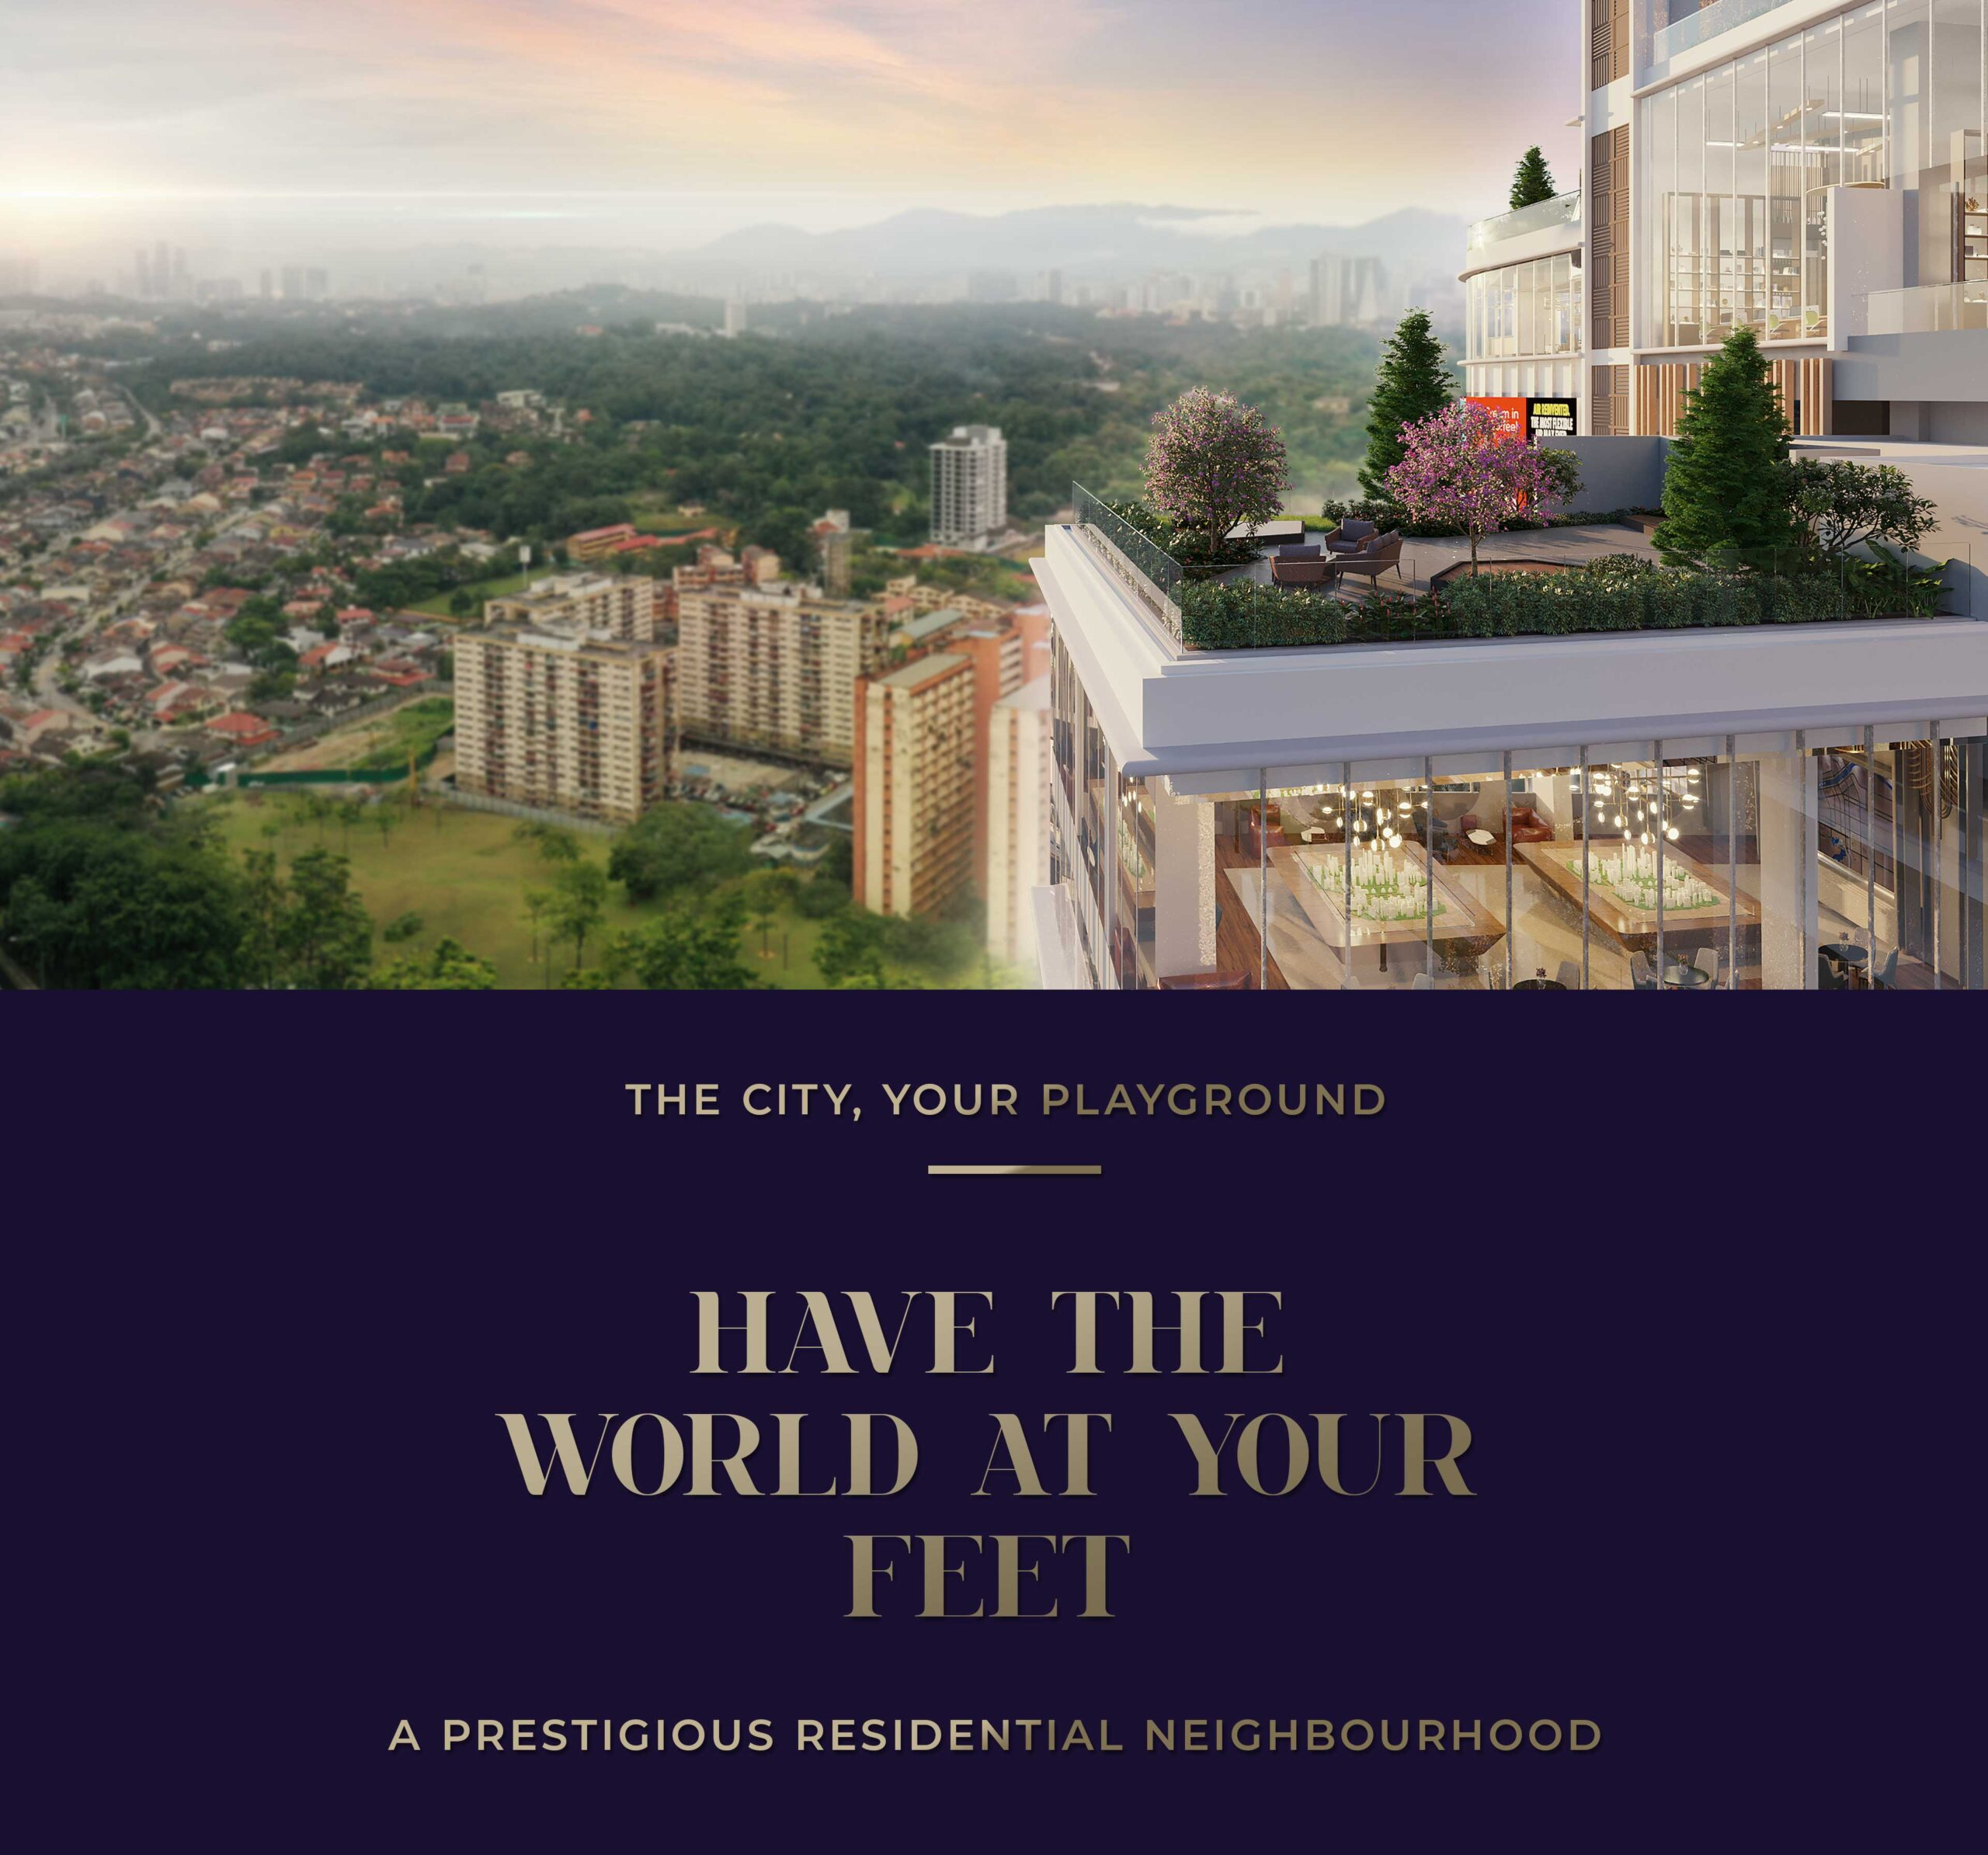 Rooftop view of Bangsar from Alfa Bangsar sky garden with text: The city, your playground. Have the world at your feet. A prestigious residential neighbourhood.